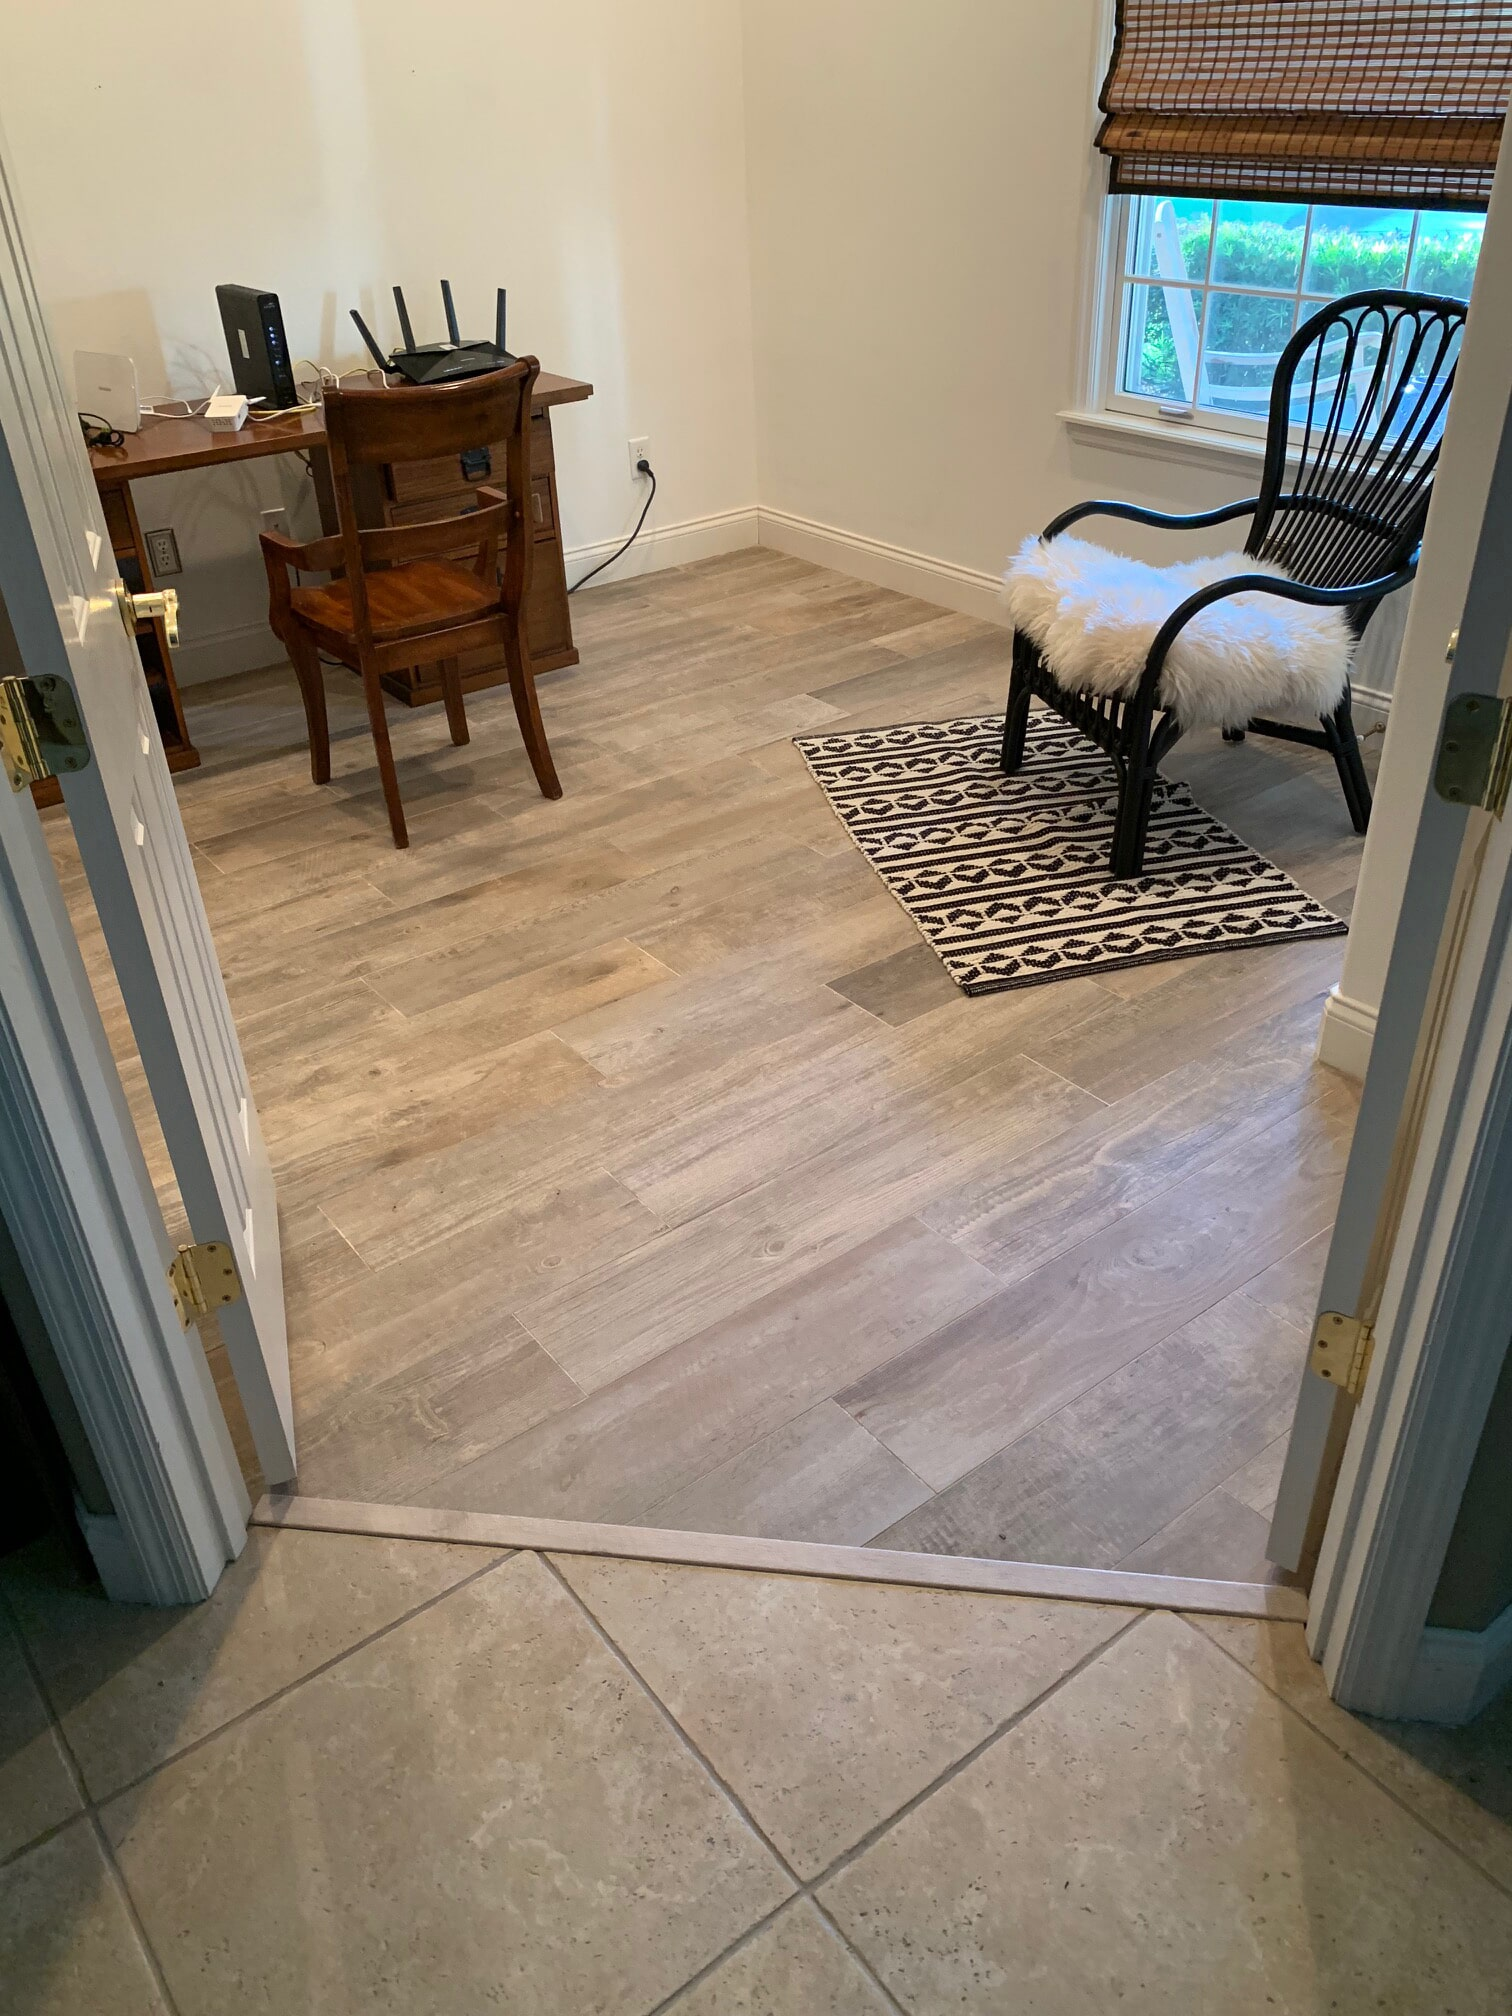 Luxury vinyl and tile flooring from The Flooring Center in Orlando, FL